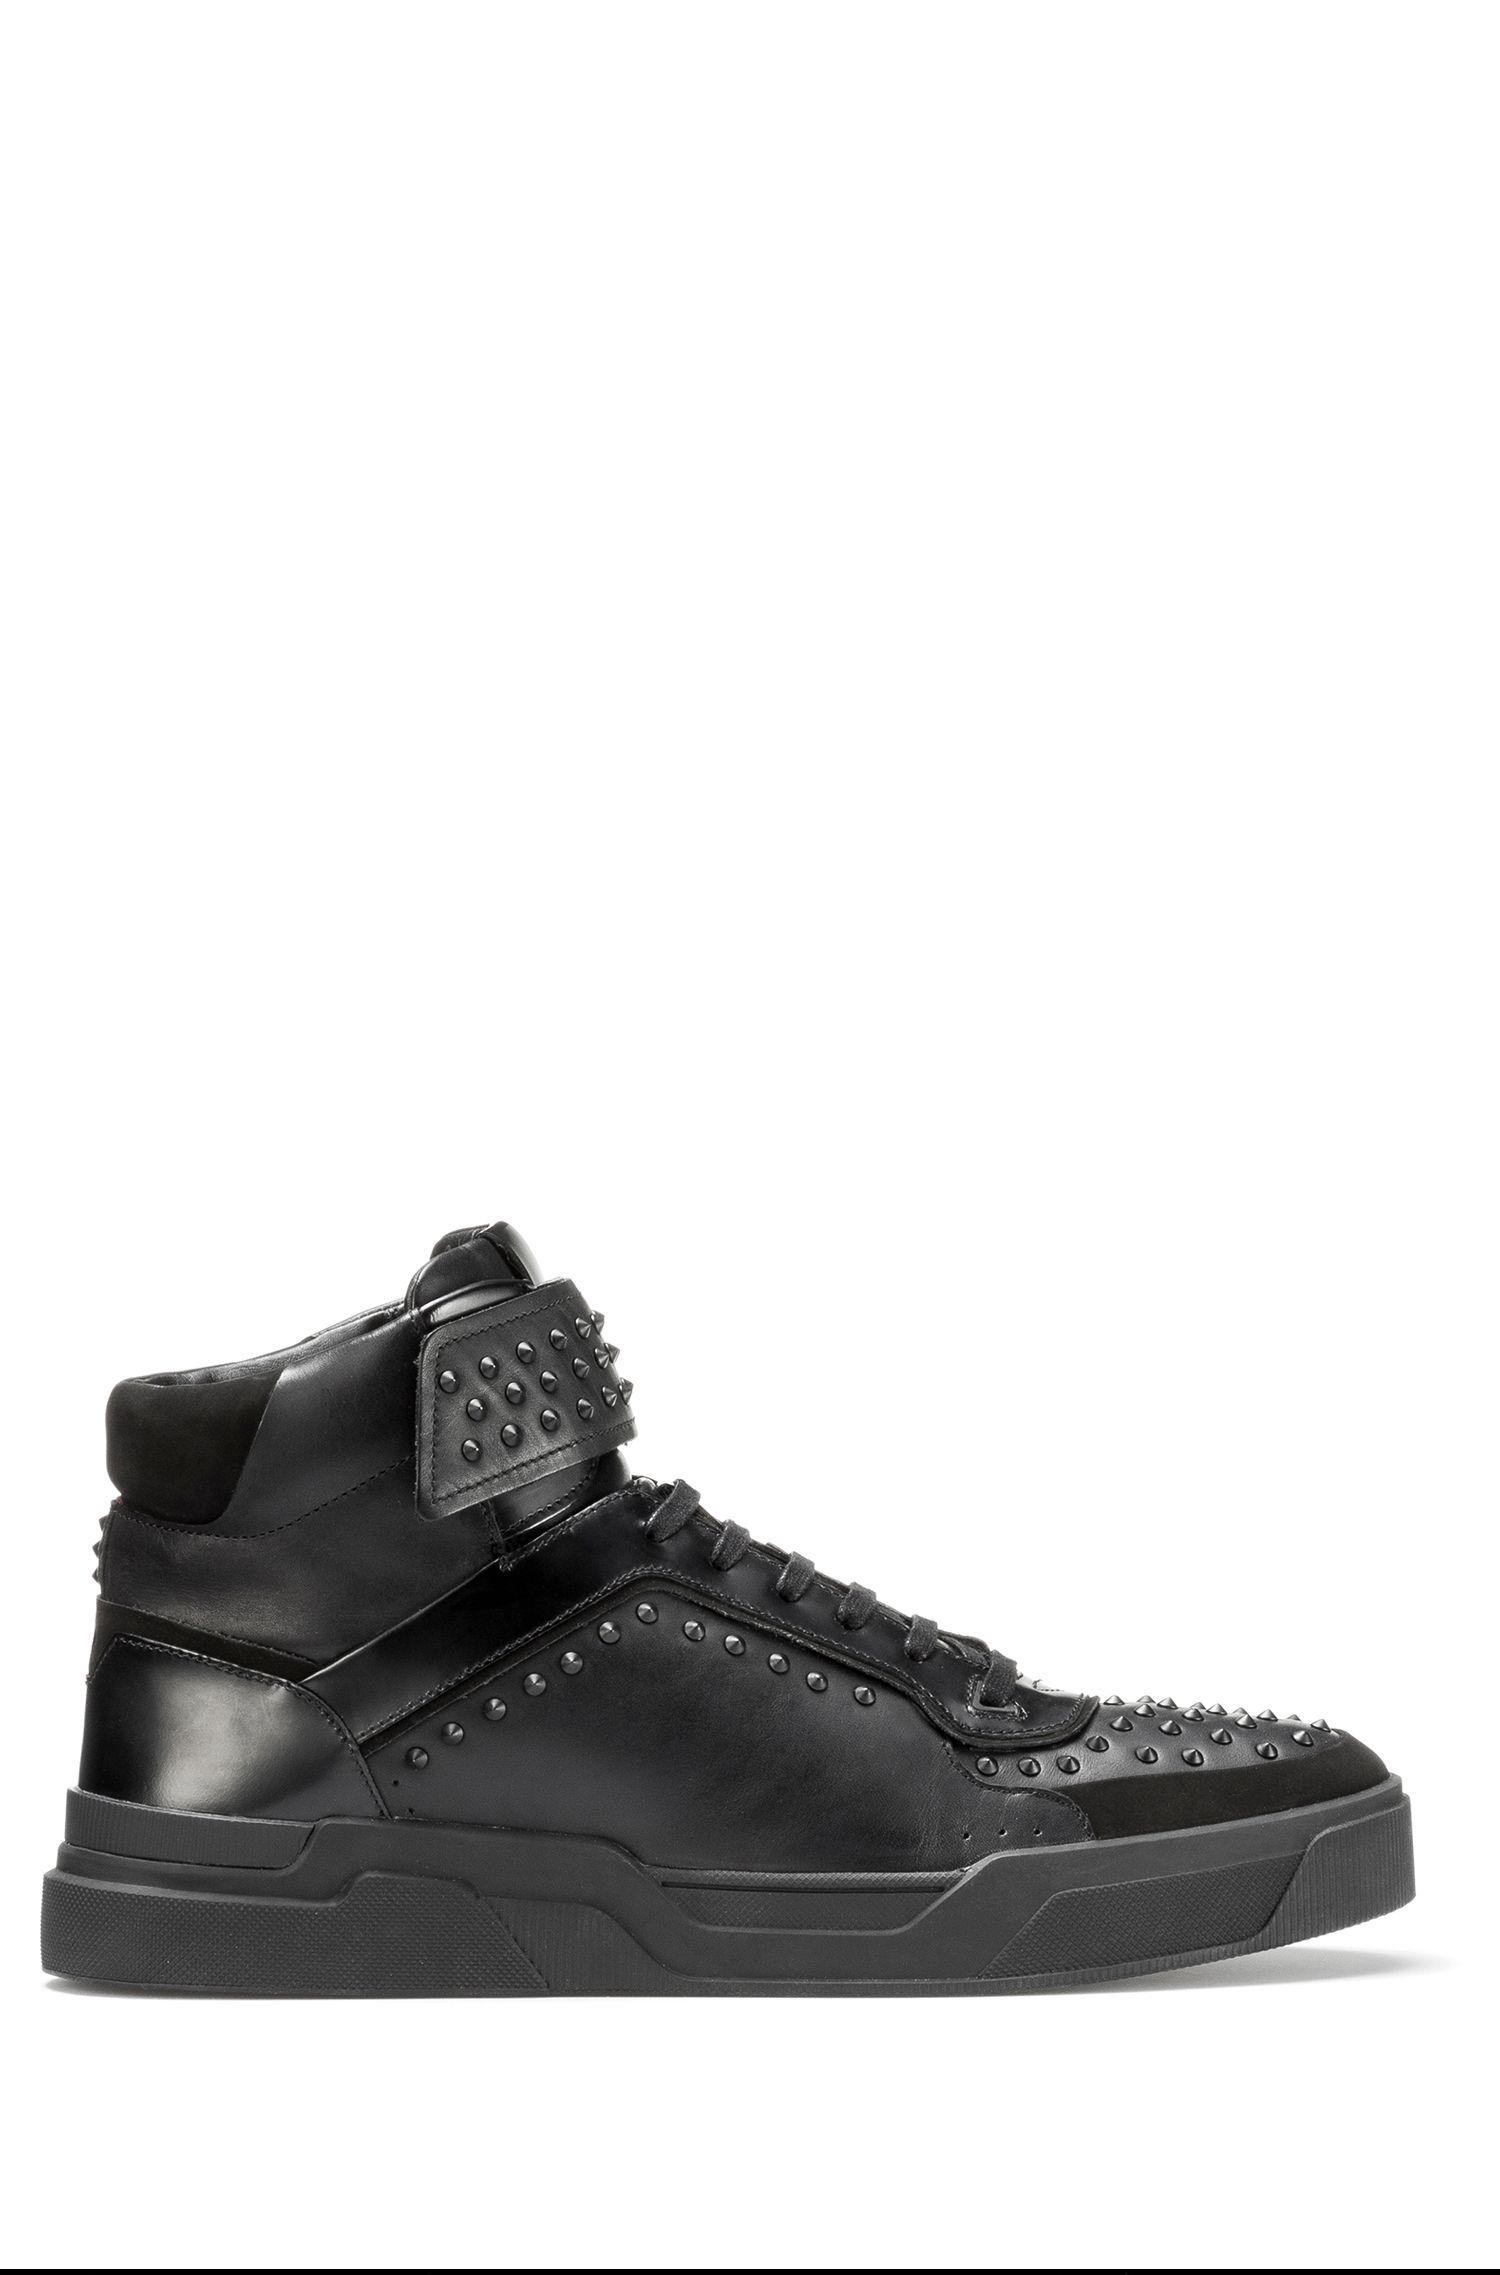 Sneakers high-top in pelle nappa con borchie